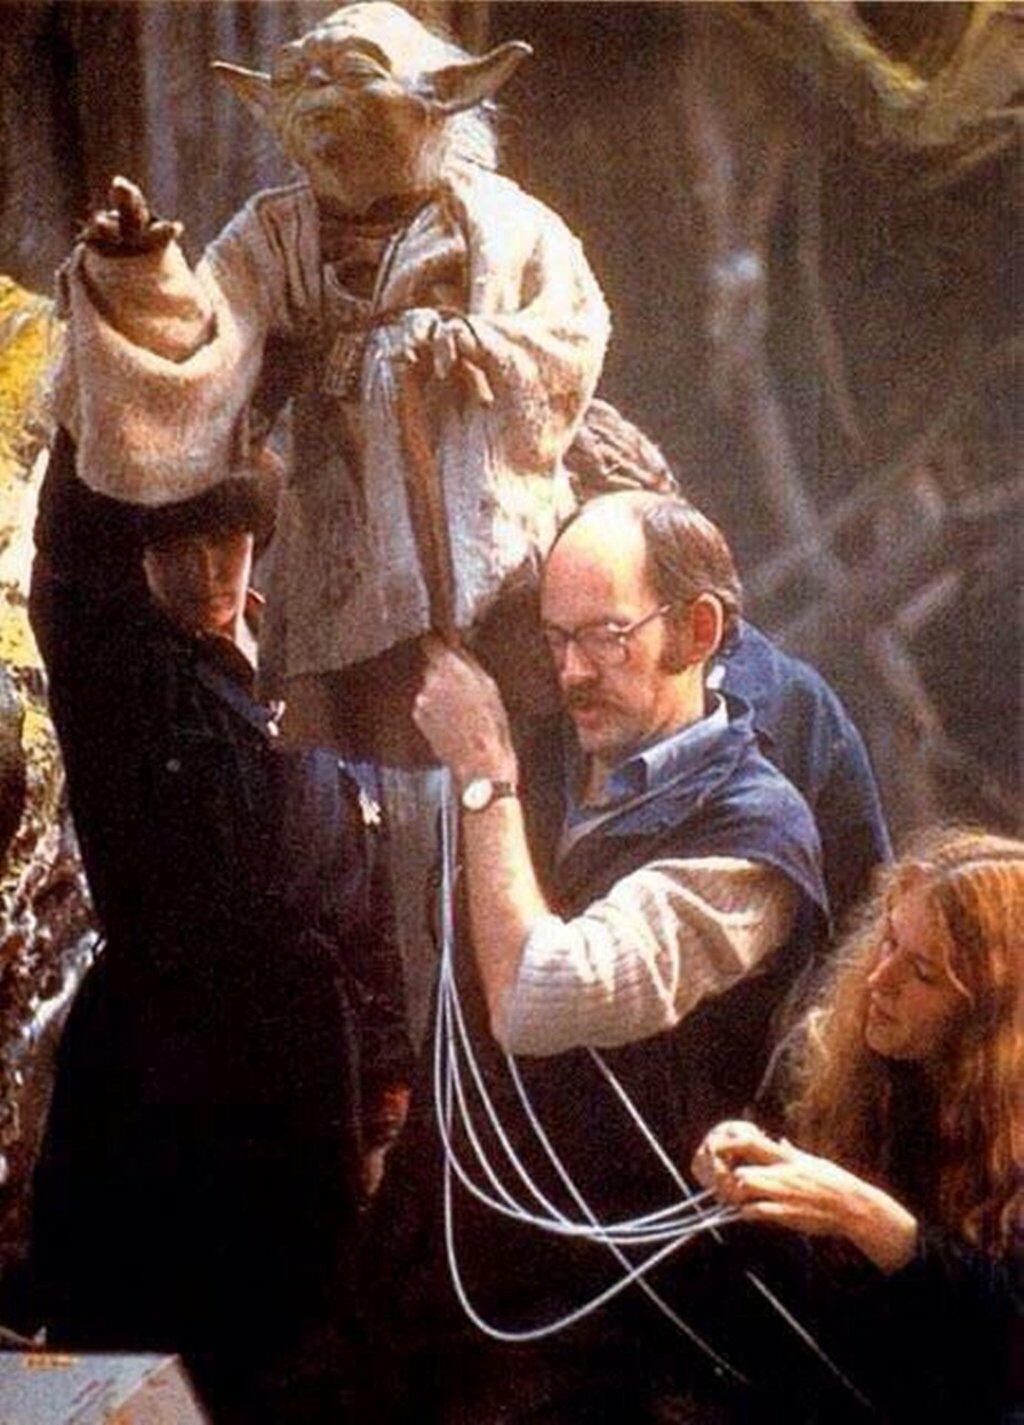 Frank Oz and Yoda behind the scenes of The Empire Strikes Back